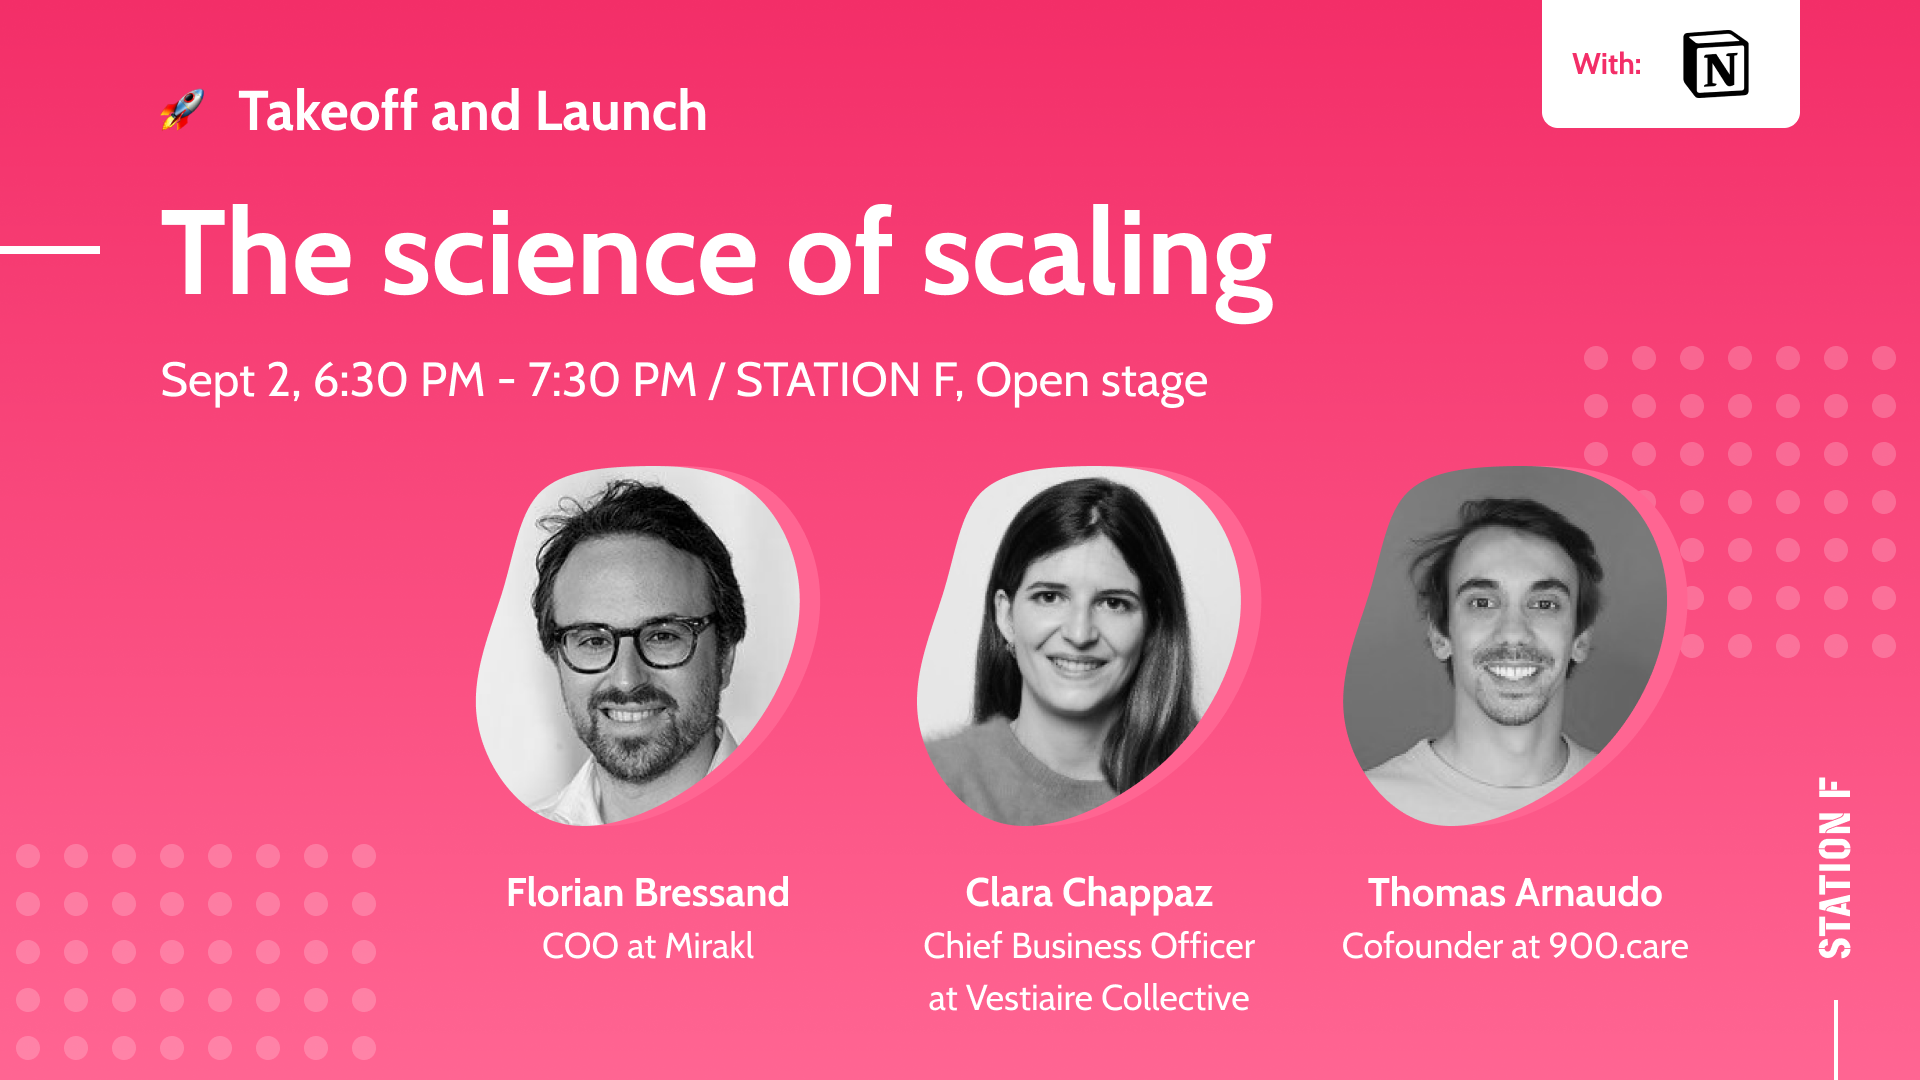 Thumbnail for event The science of scaling